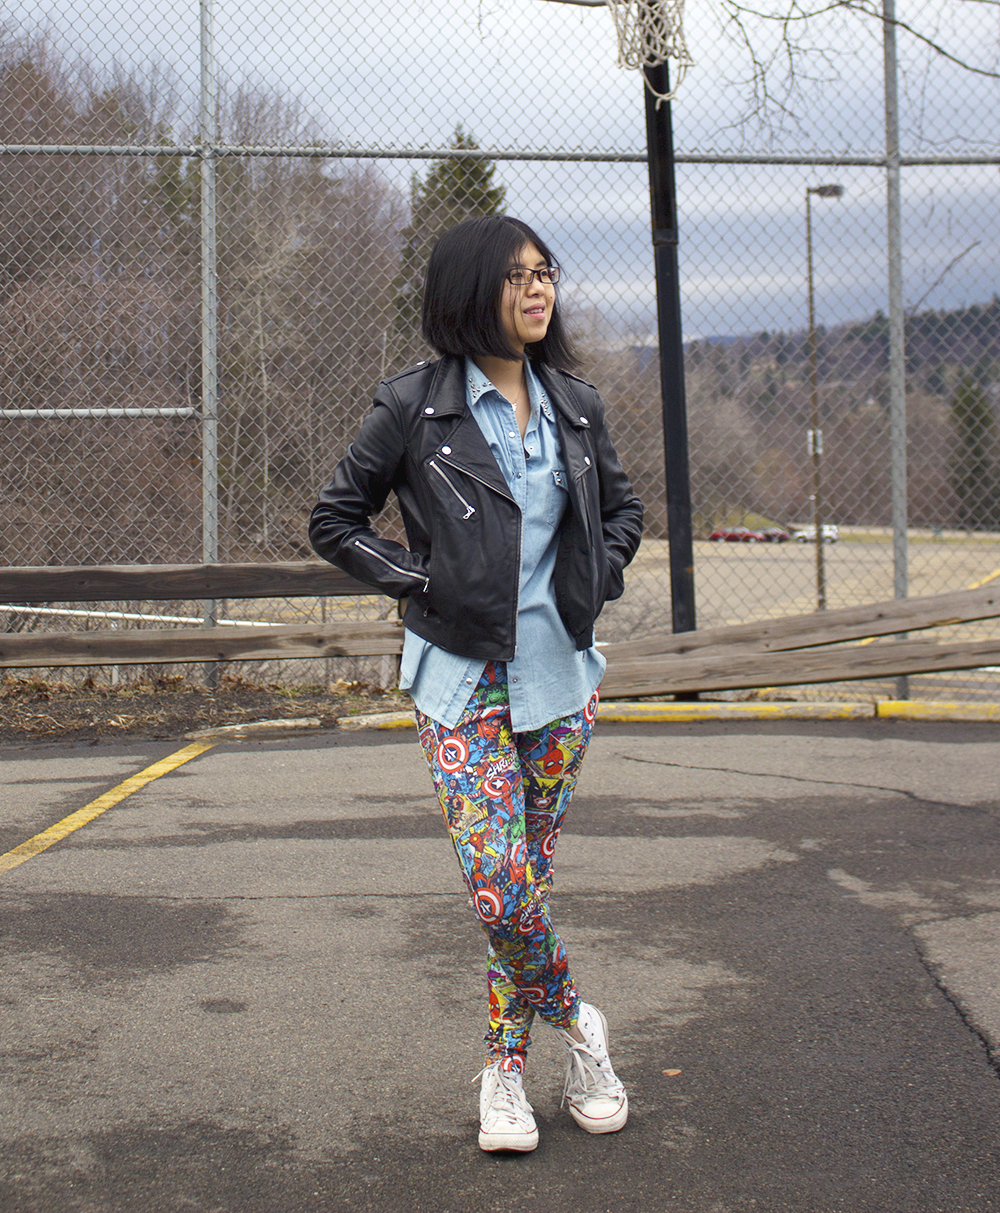 Keeping it casual with a MARVEL's superheroes leggings, chambray shirt, leather jacket and classic Chuck Taylors